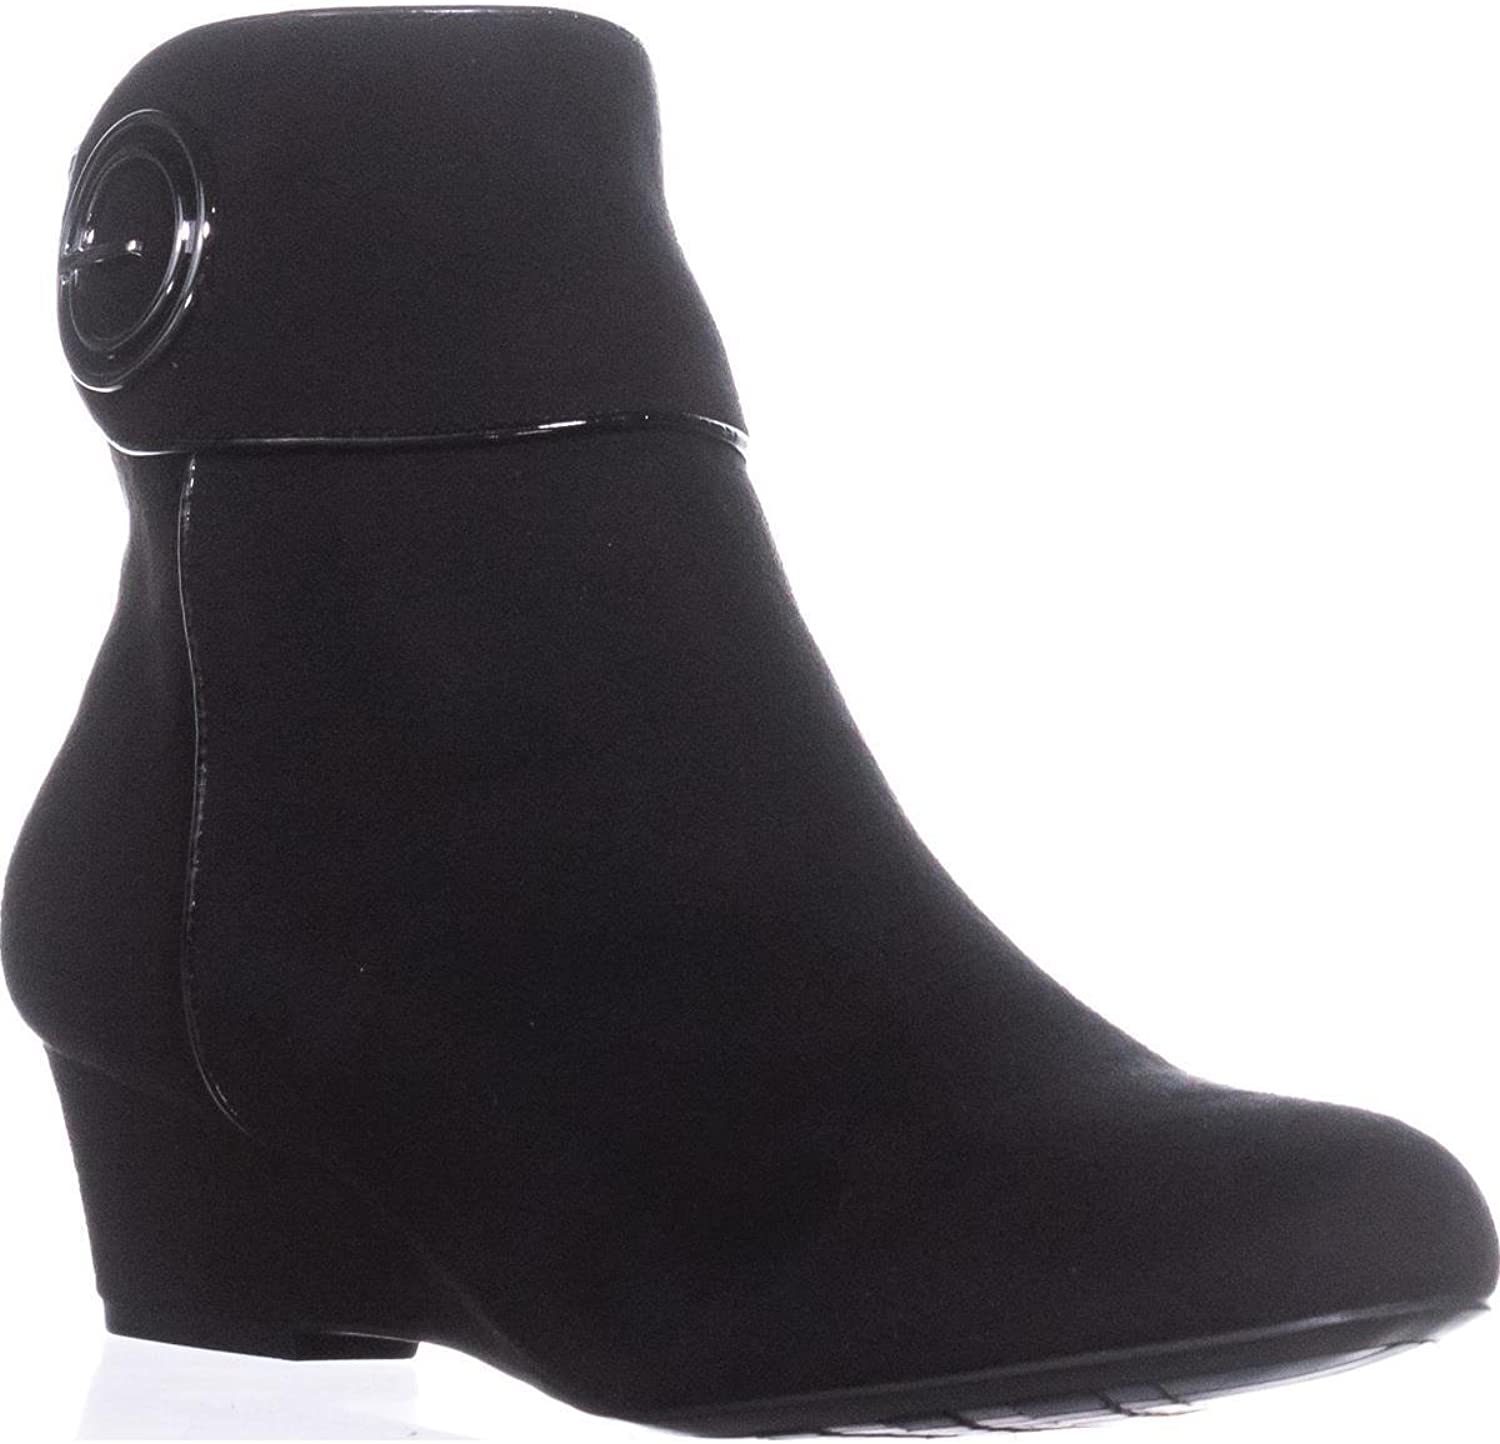 Impo Womens Goya Faux Suede Ankle Booties